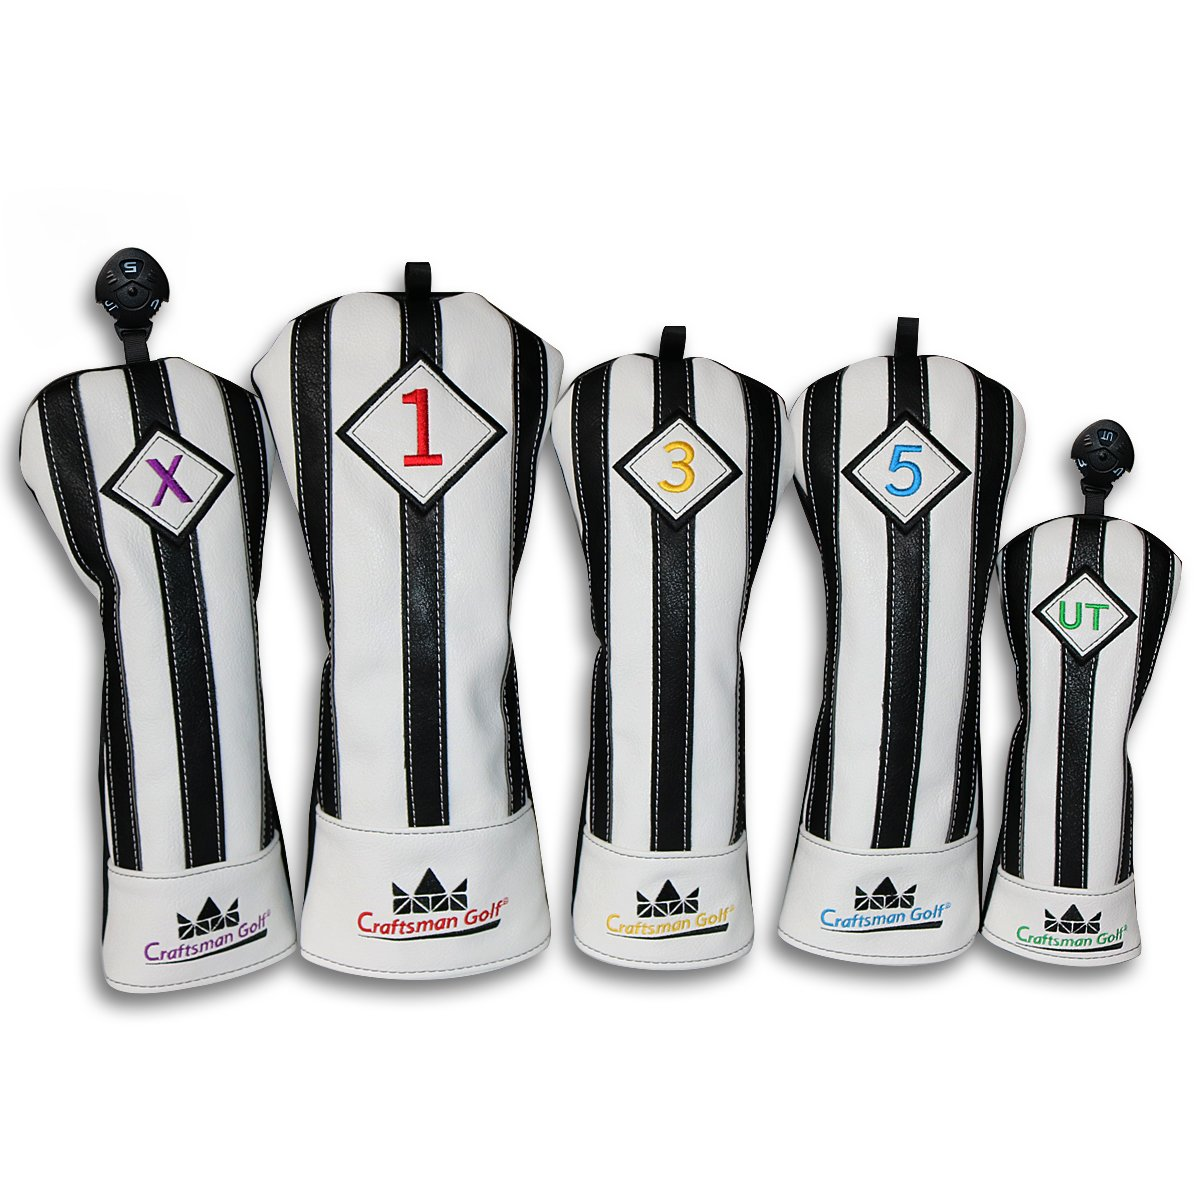 Craftsman Golf Black with White Stripes Series Golf Club Driver Wood UT Hybrid Head Cover Headcover (5pcs(#1,#3,#5,UT,X Cover))